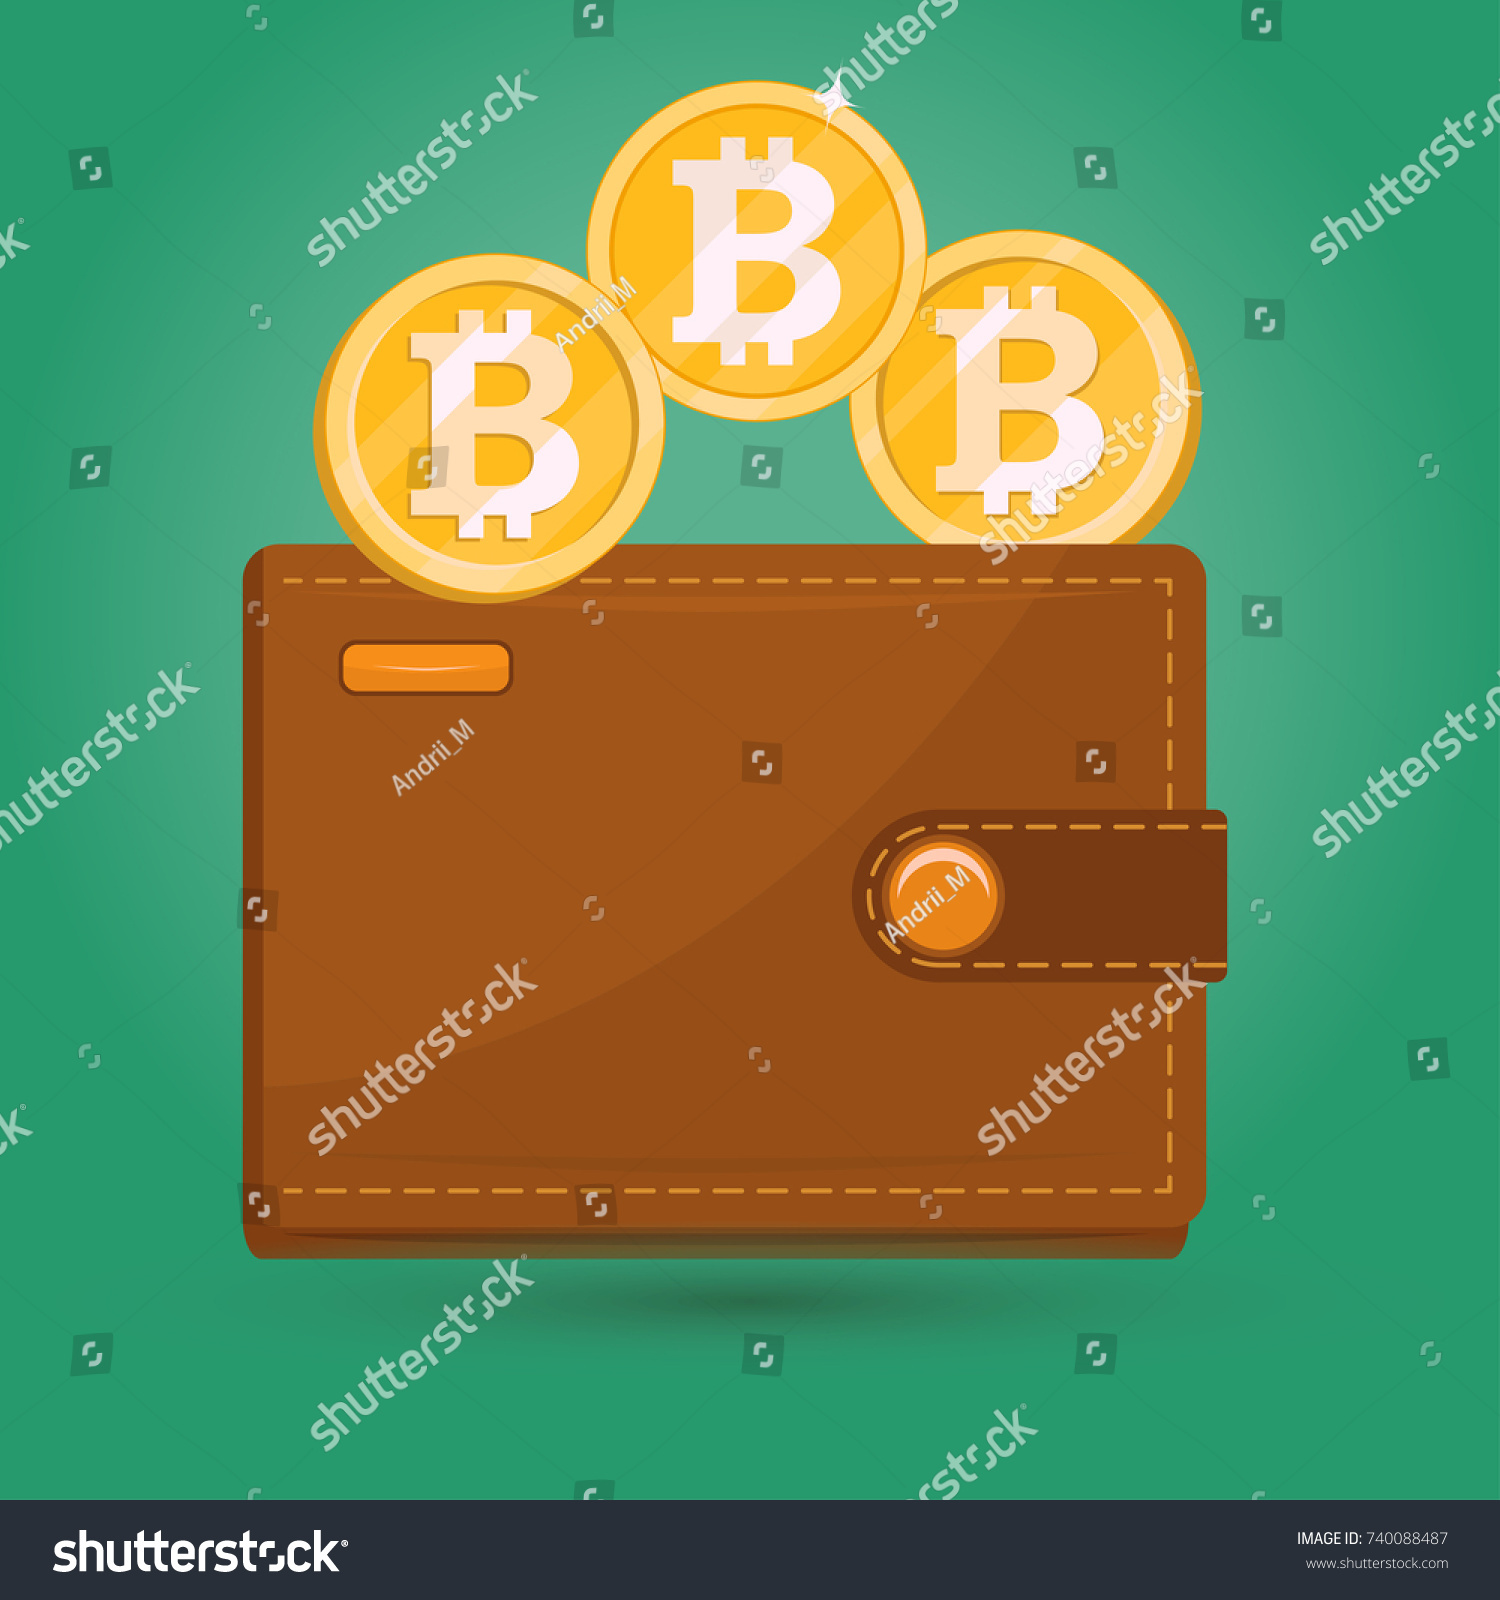 Bitcoin Wallet Gold Physical Bit Coin Digital Crypto Currency Blockchain Sign Icon Internet